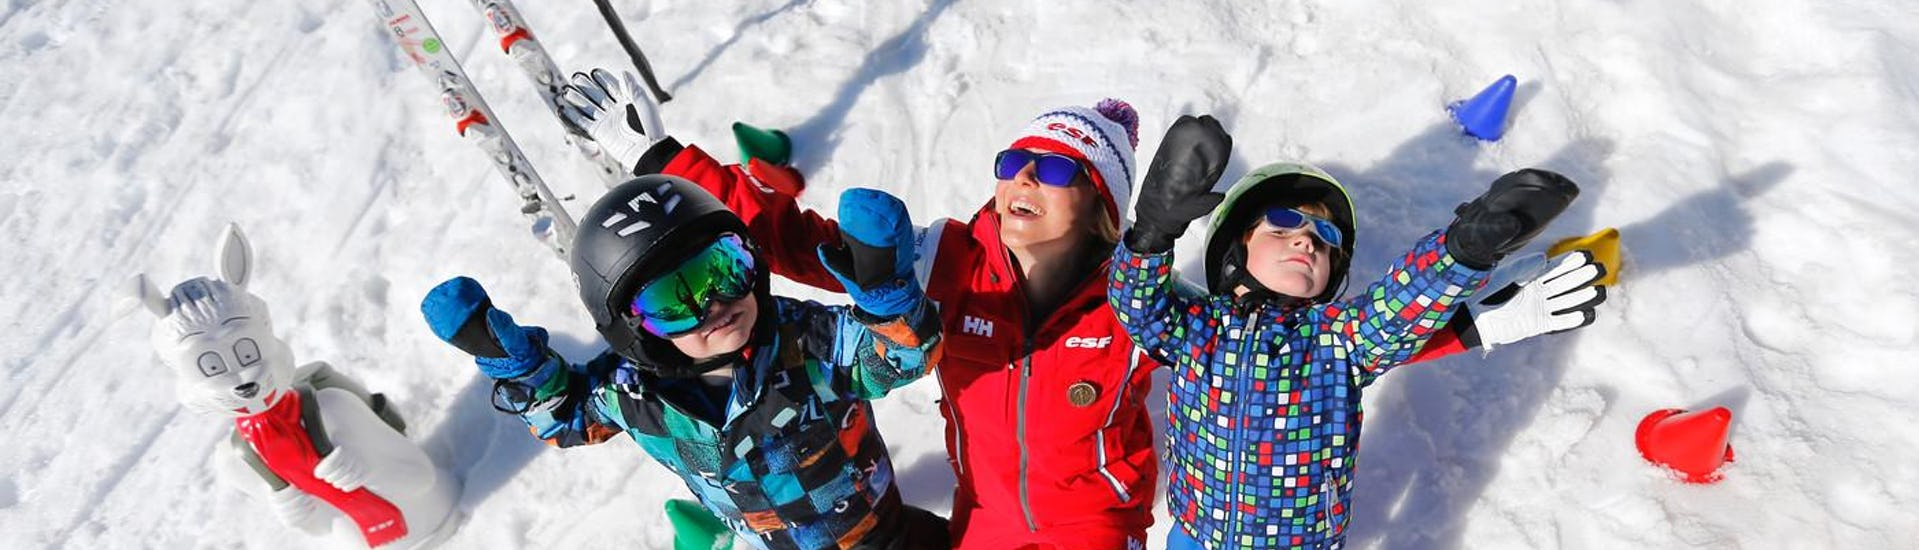 "Children are standing in the snow with their arms in the air alongside their ski instructor from the ski school ESF Alpe d'Huez during their Kids Ski Lessons ""Children's Chalet"" (2-5 years)."